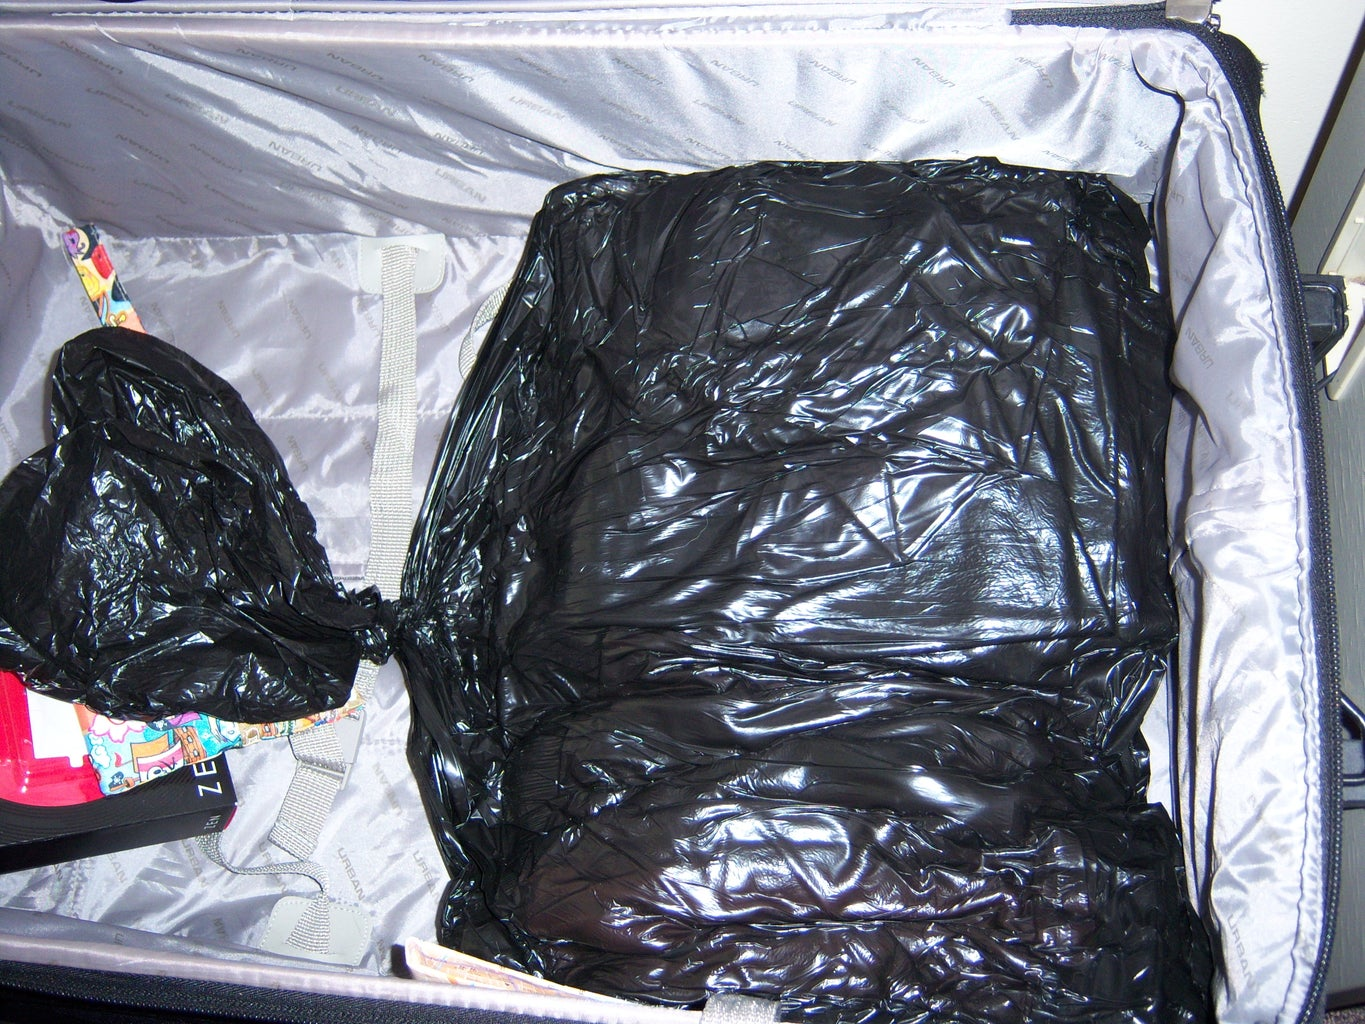 The Suitcase Wont Close Day-saver!